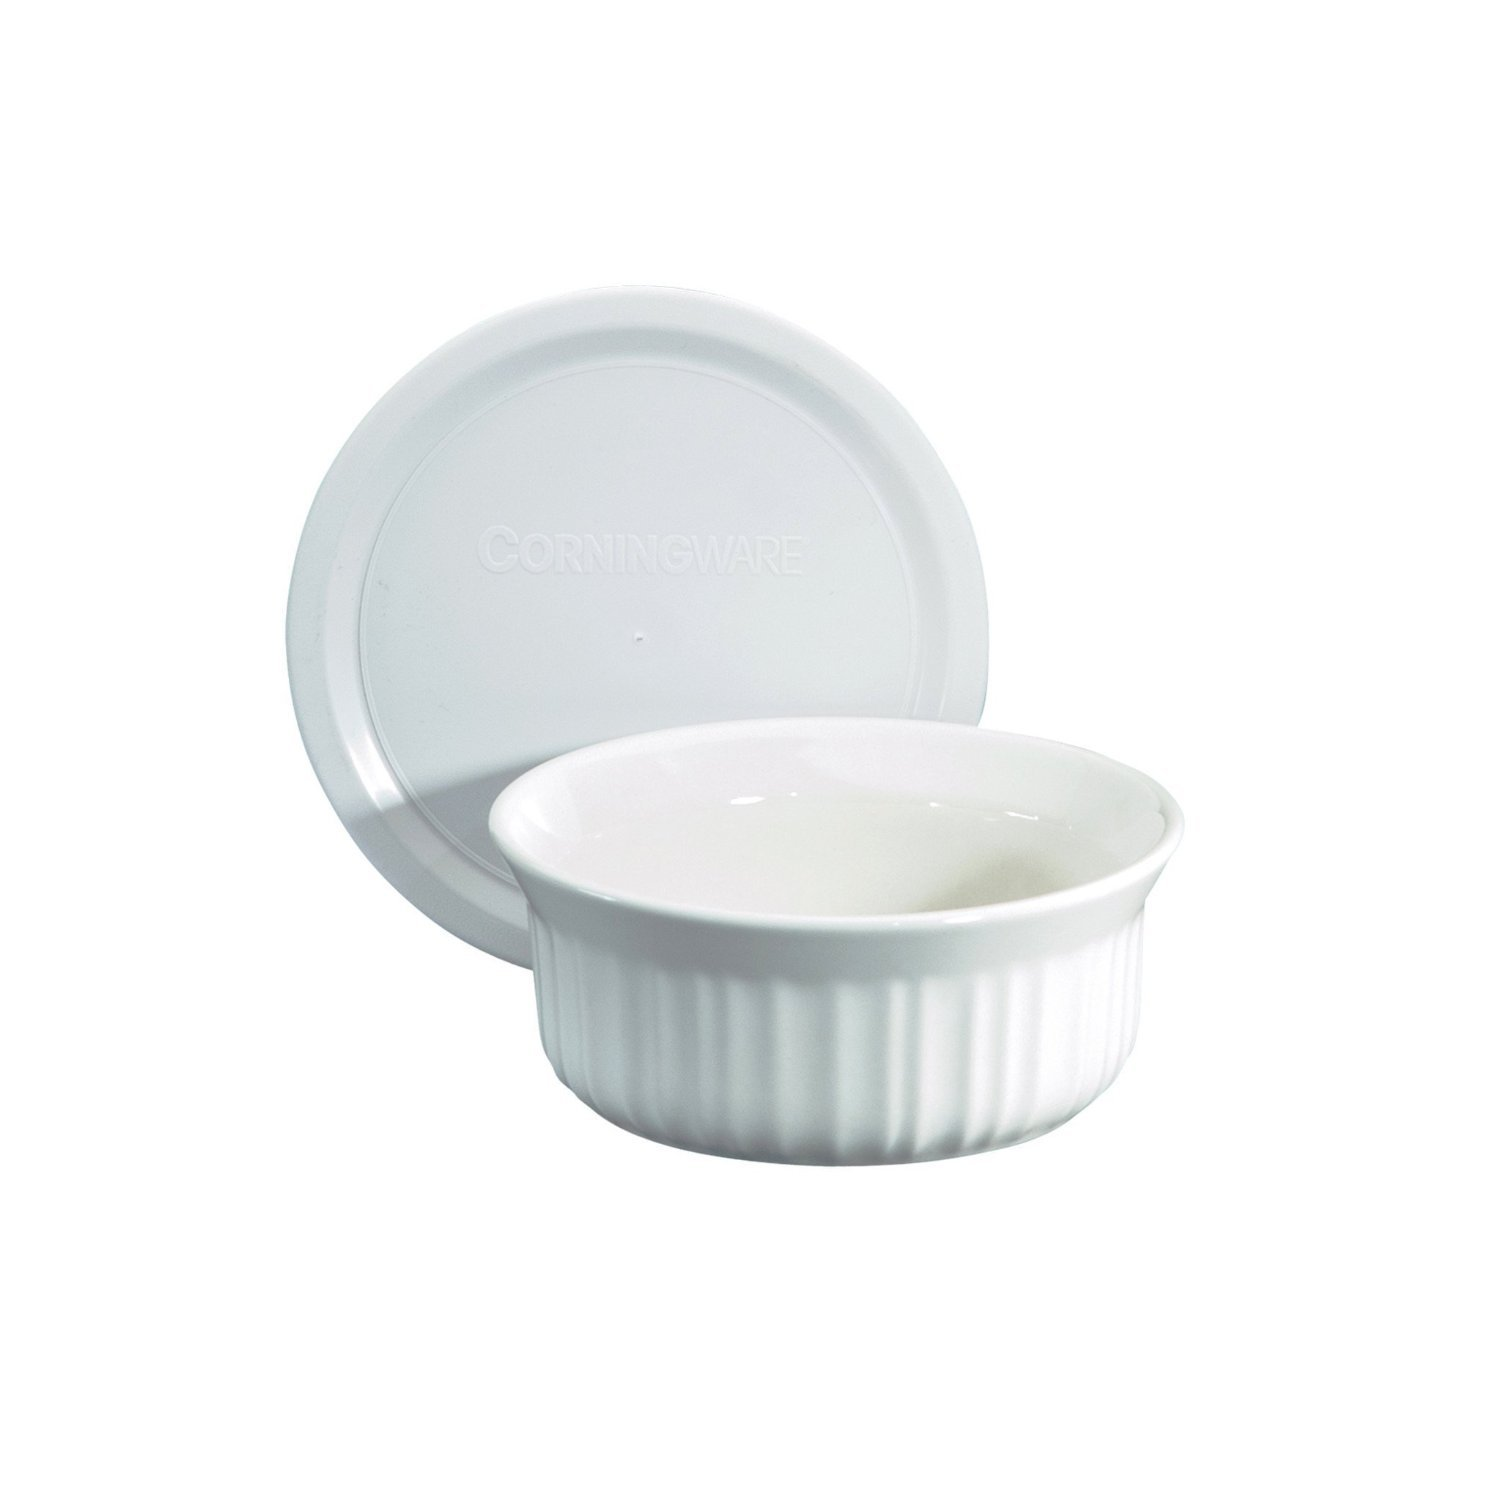 CorningWare Pop-Ins 16Oz Round Dish with Cover